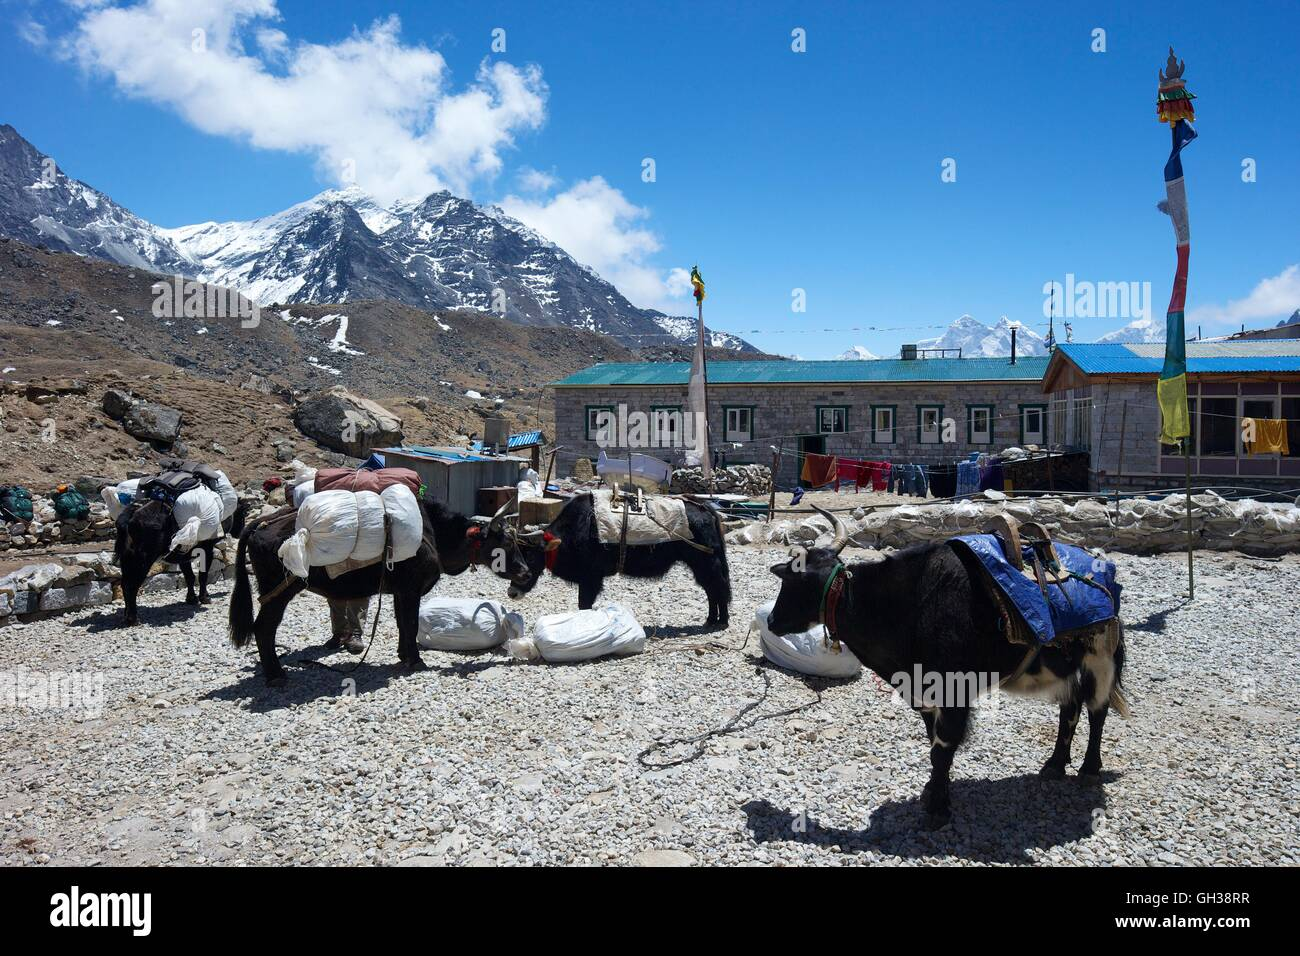 Yaks parked at Mother Earth House, Lobuche,  Khumbu valley, Sagarmatha National Park, Solukhumbu District, Nepal, - Stock Image